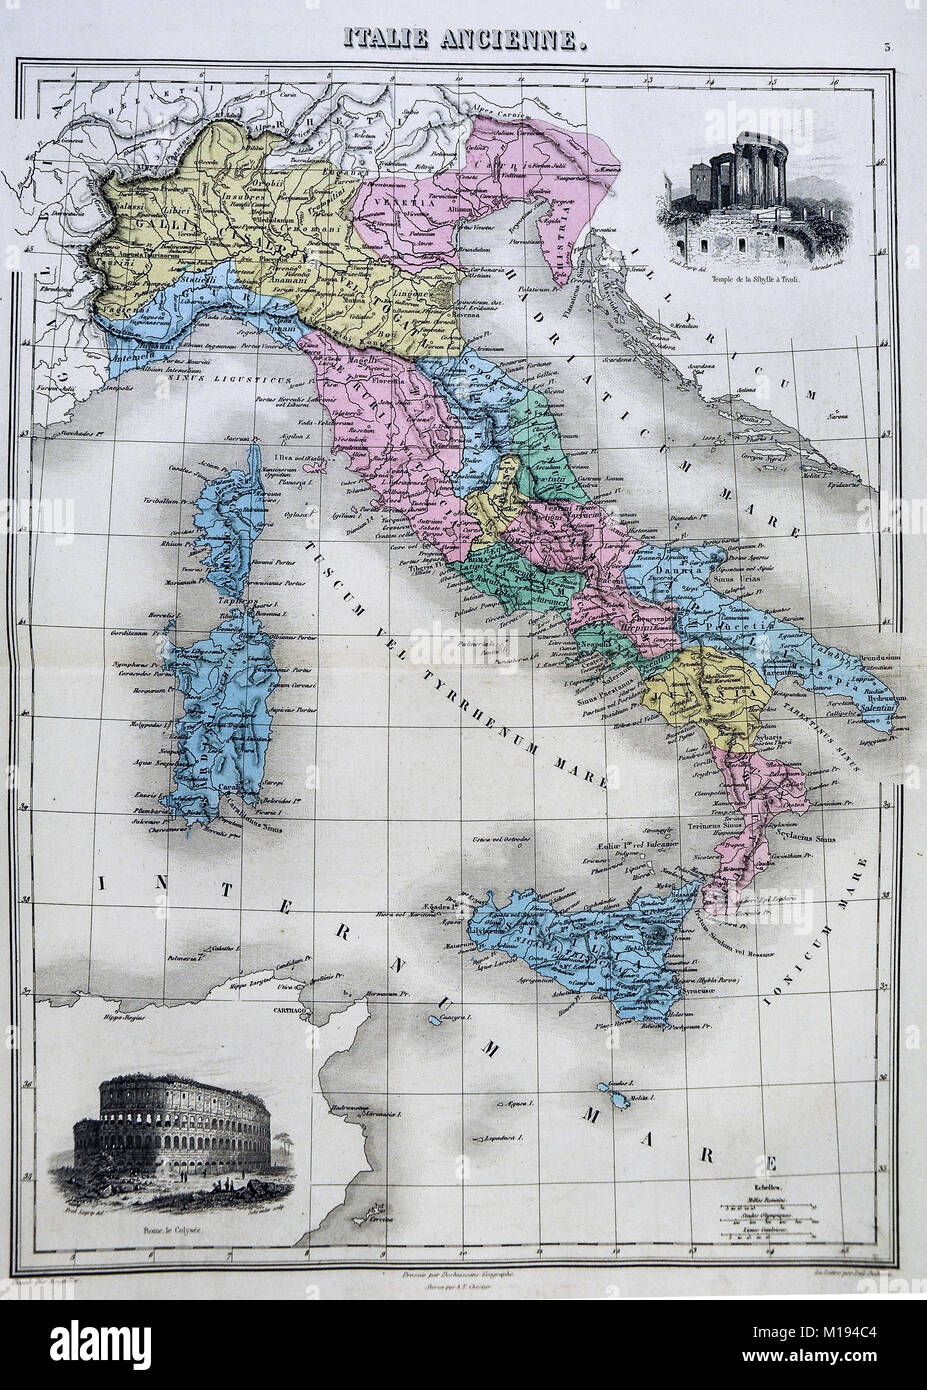 1877 Migeon Map Ancient Italy during Roman Period with Vignettes